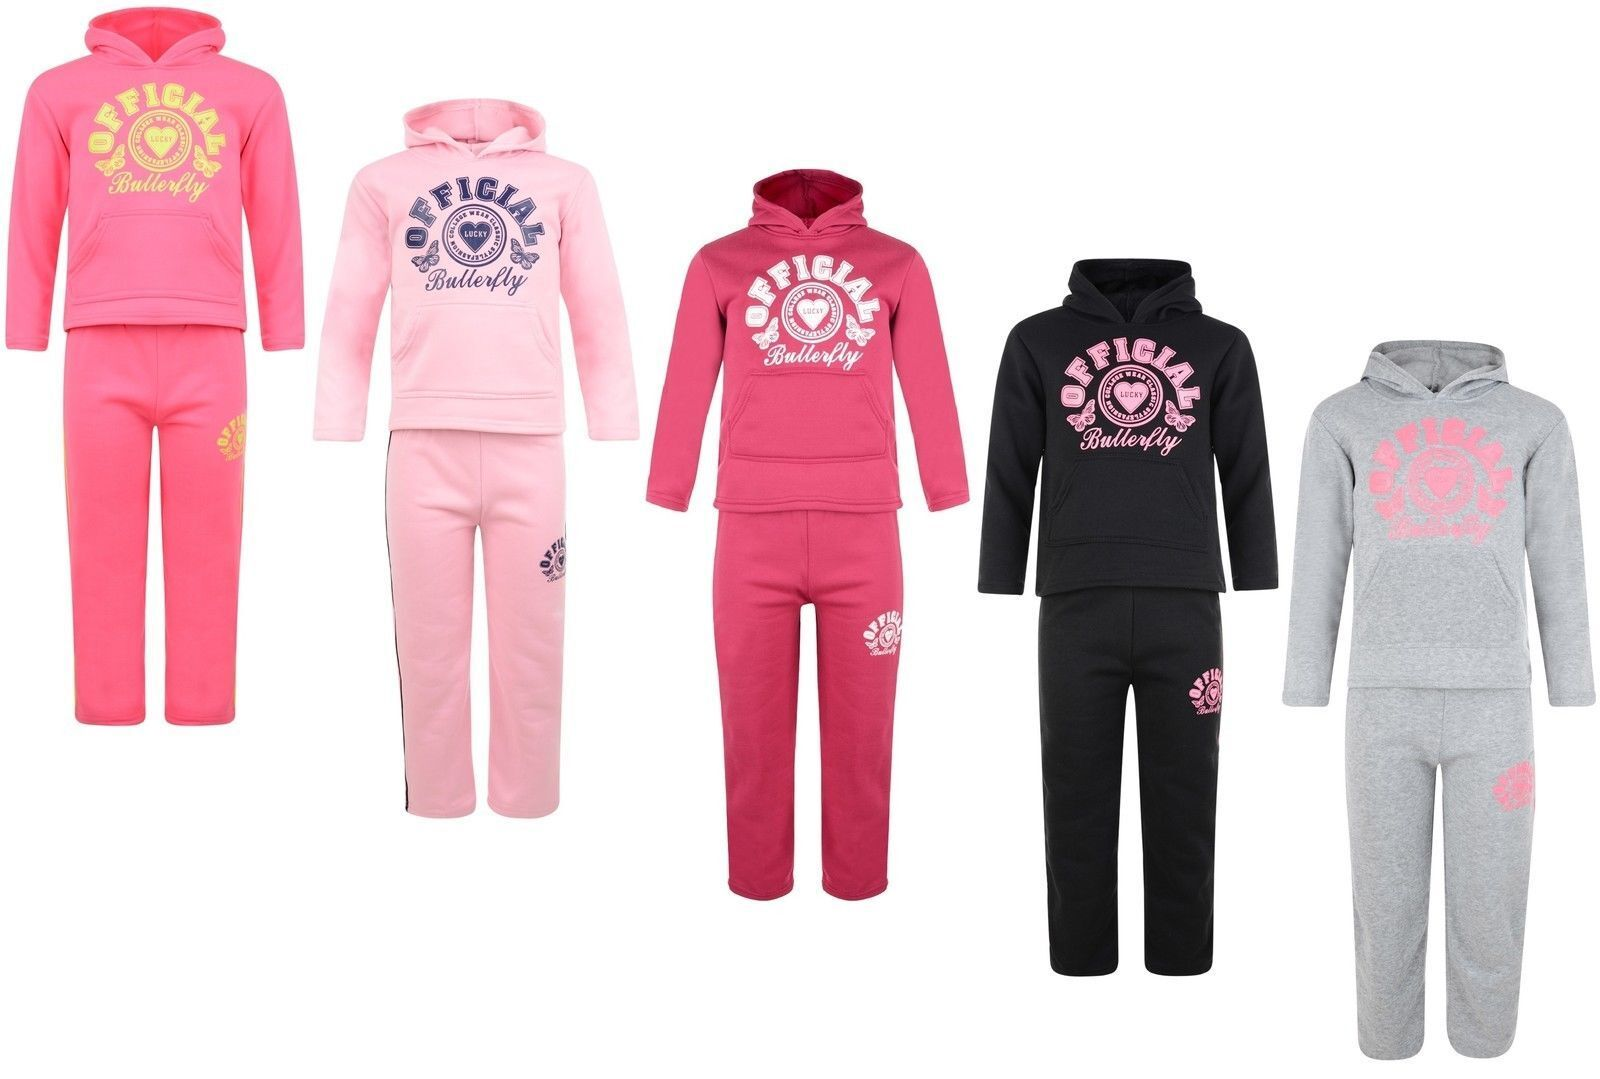 Kids Tracksuit Girls Jog Set Official Butterfly Hooded Top & Joggers Bnwt